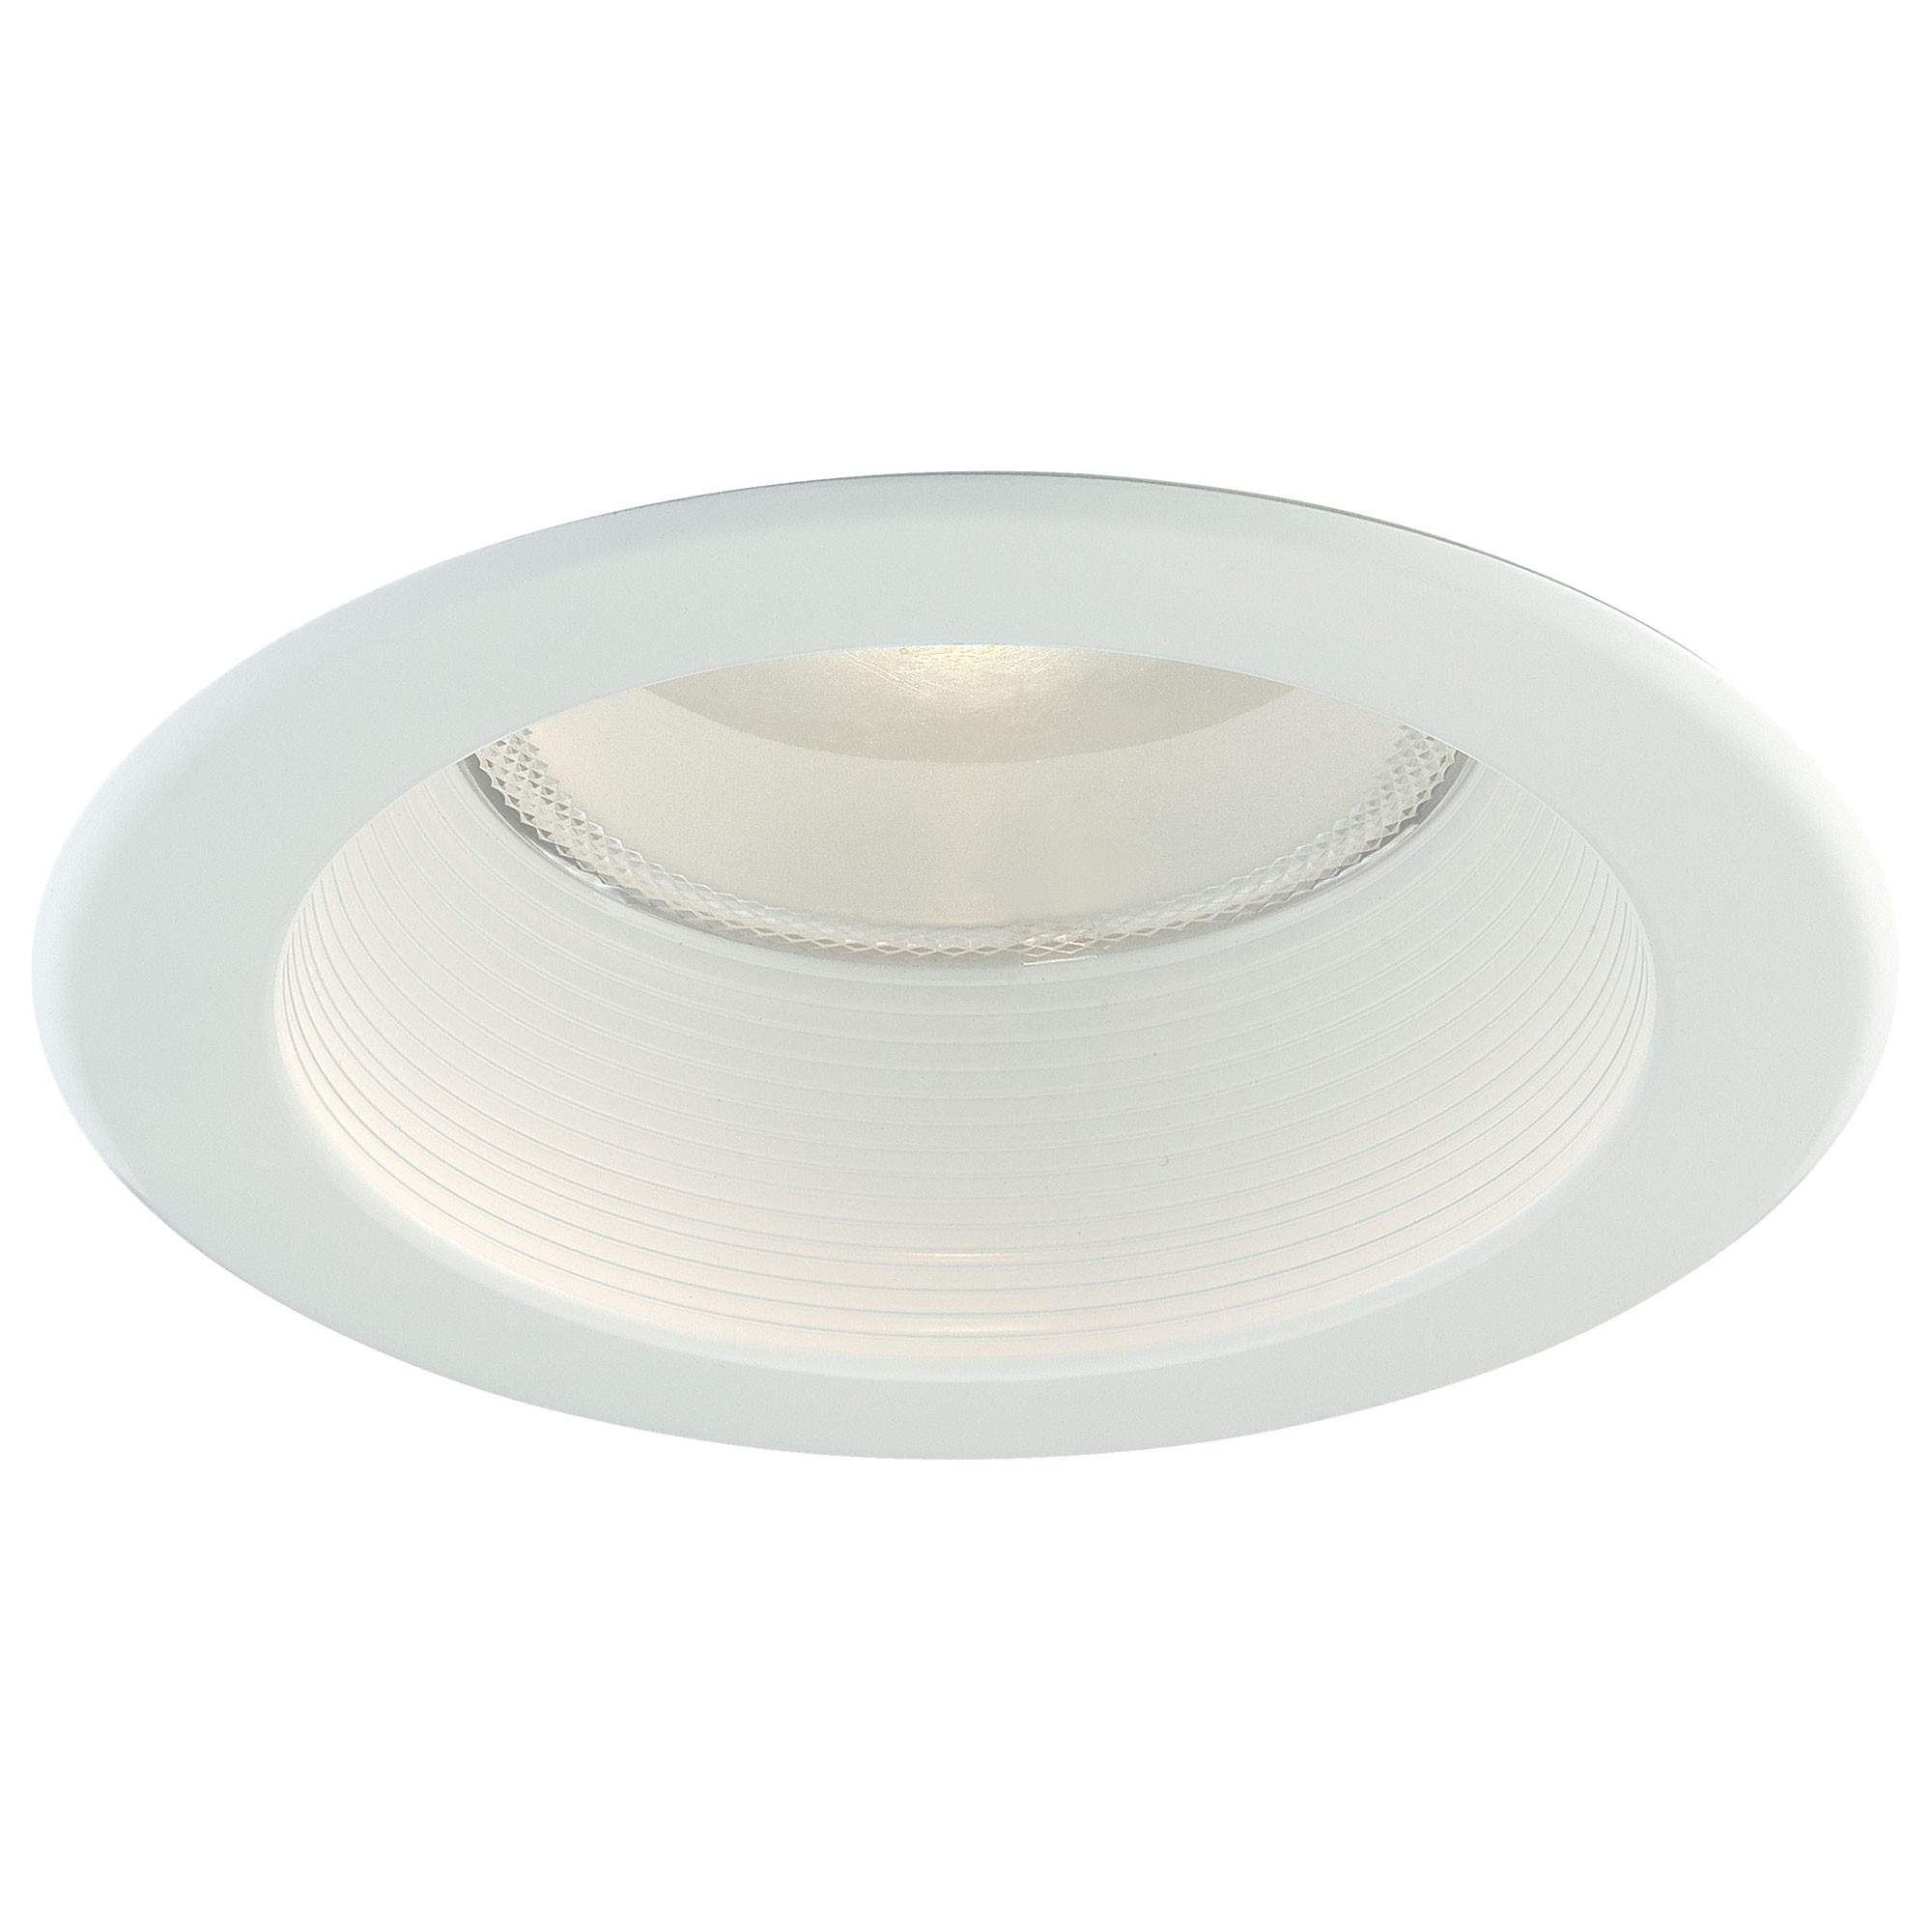 led-lights-recessed-can-6-inch-trim.jpg